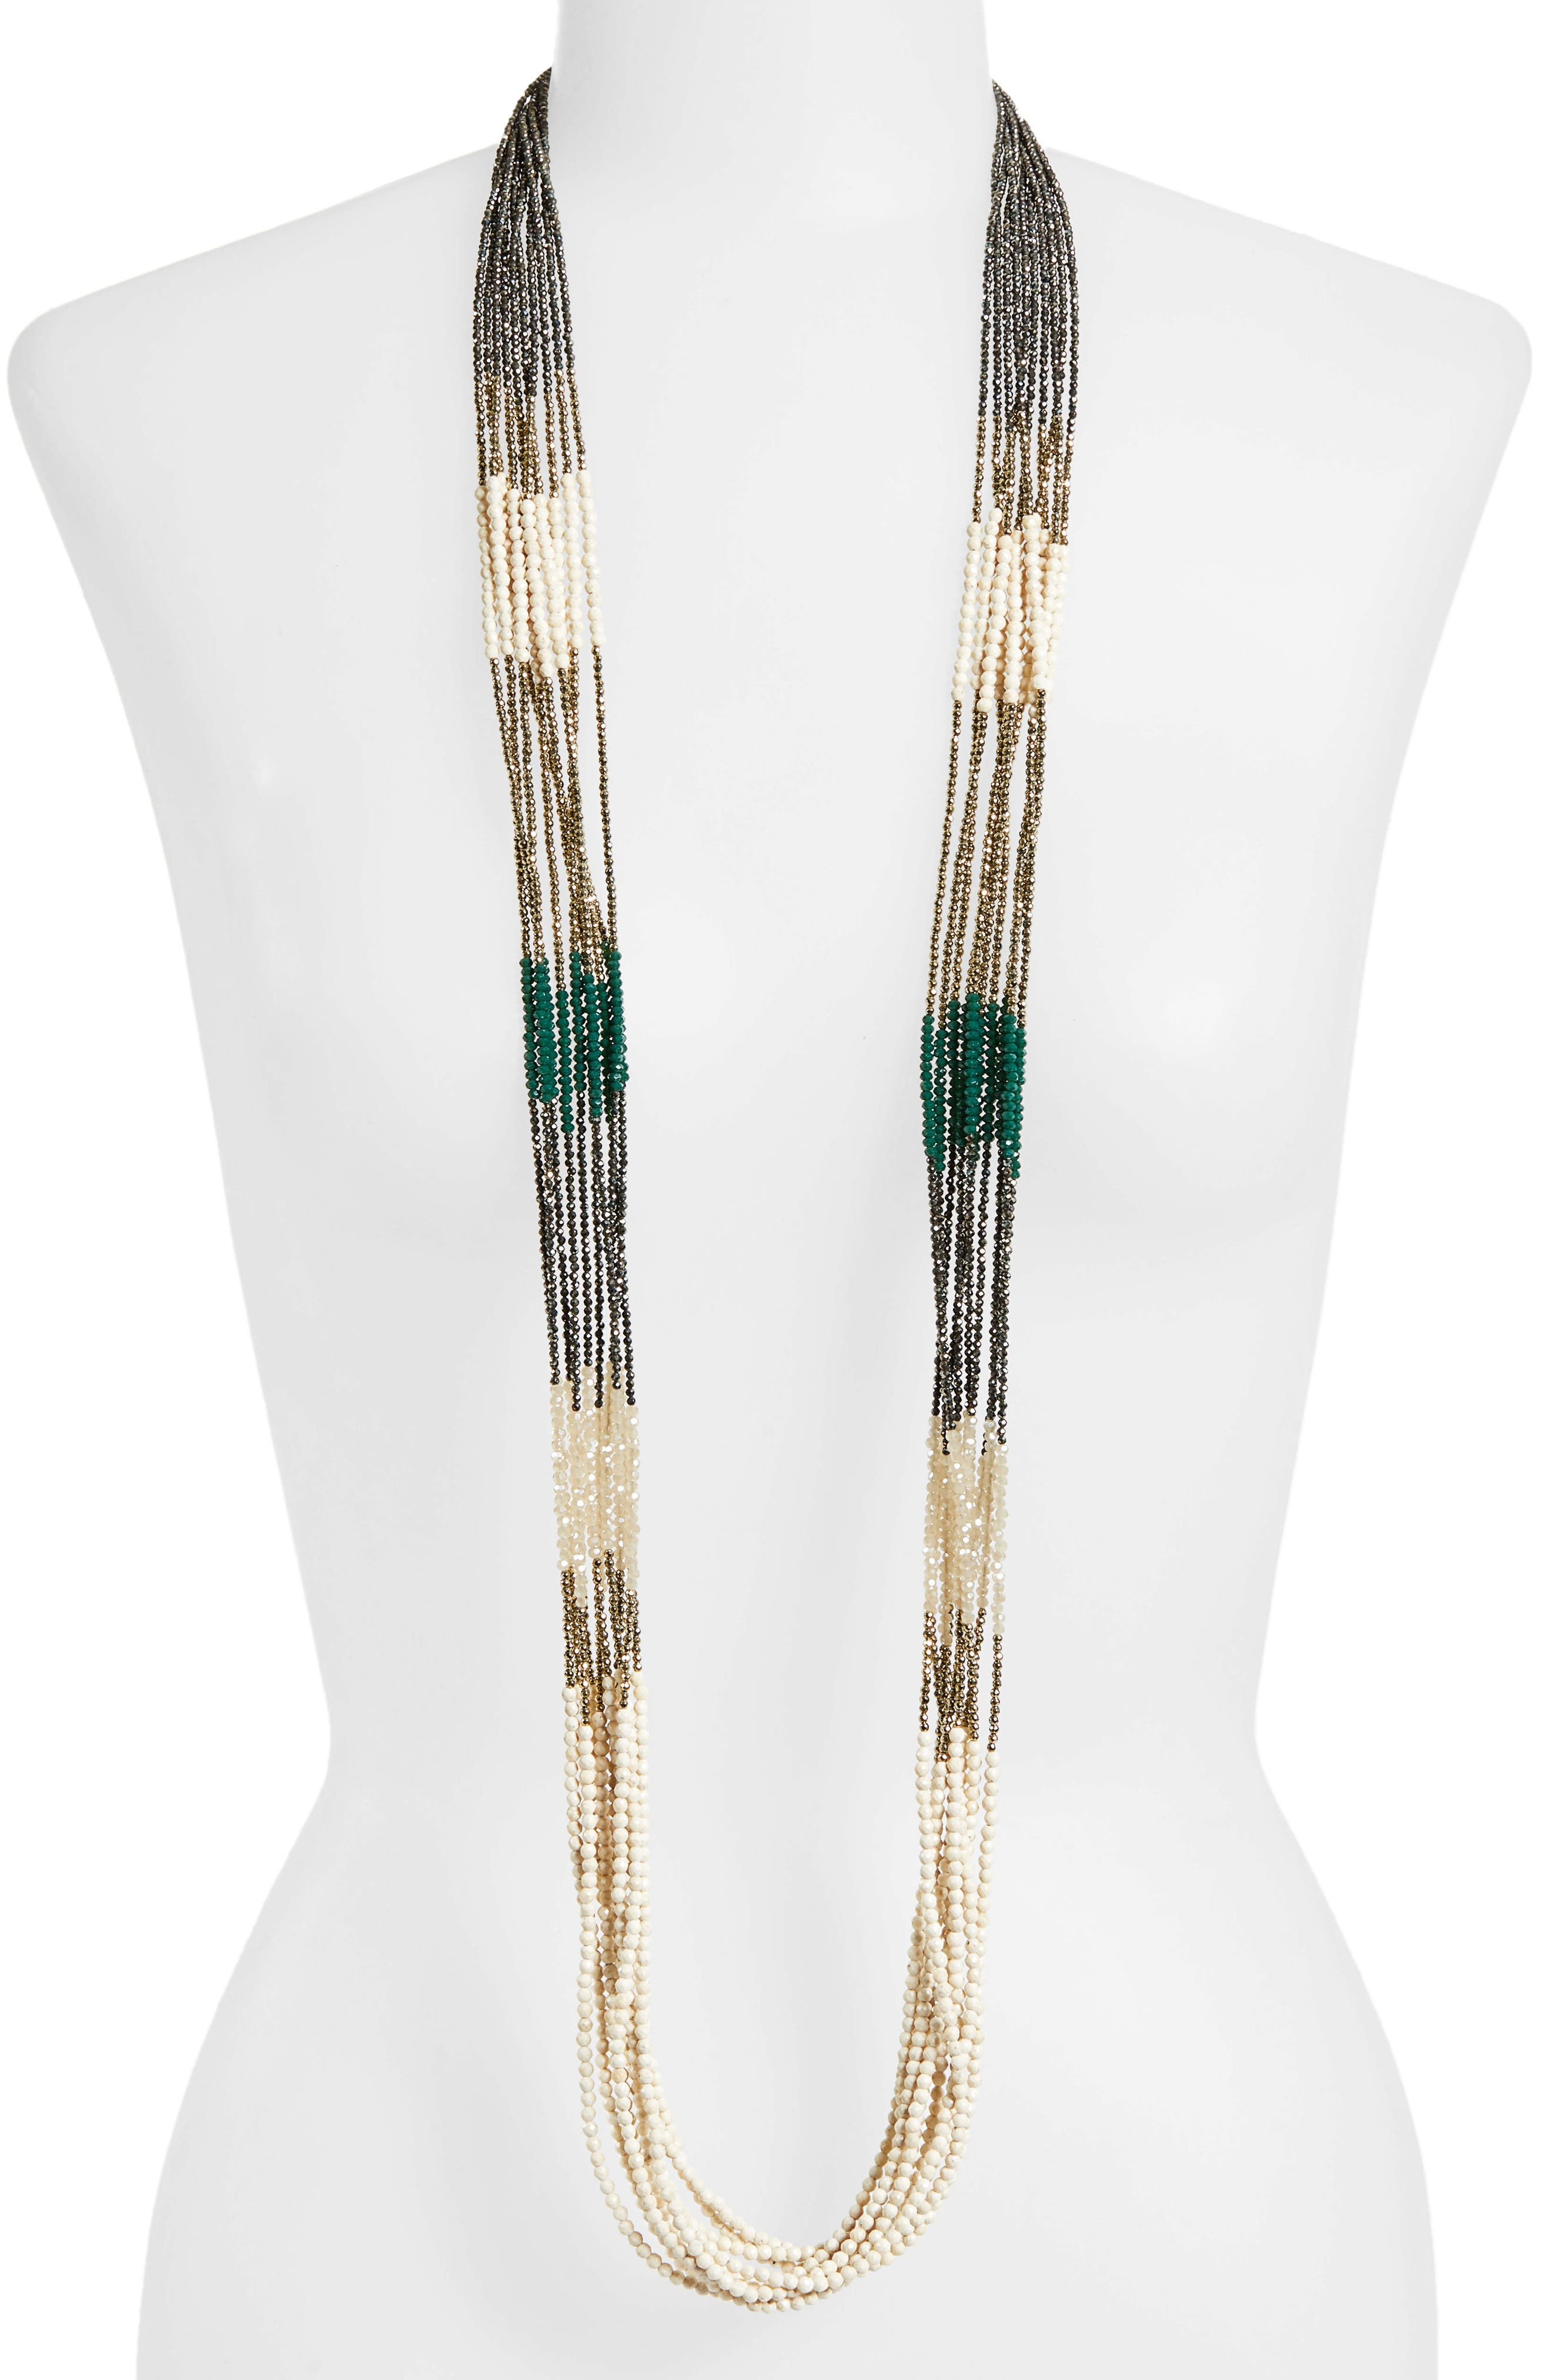 BRUNELLO CUCINELLI, Beaded Multistrand Necklace, Alternate thumbnail 2, color, BROWN